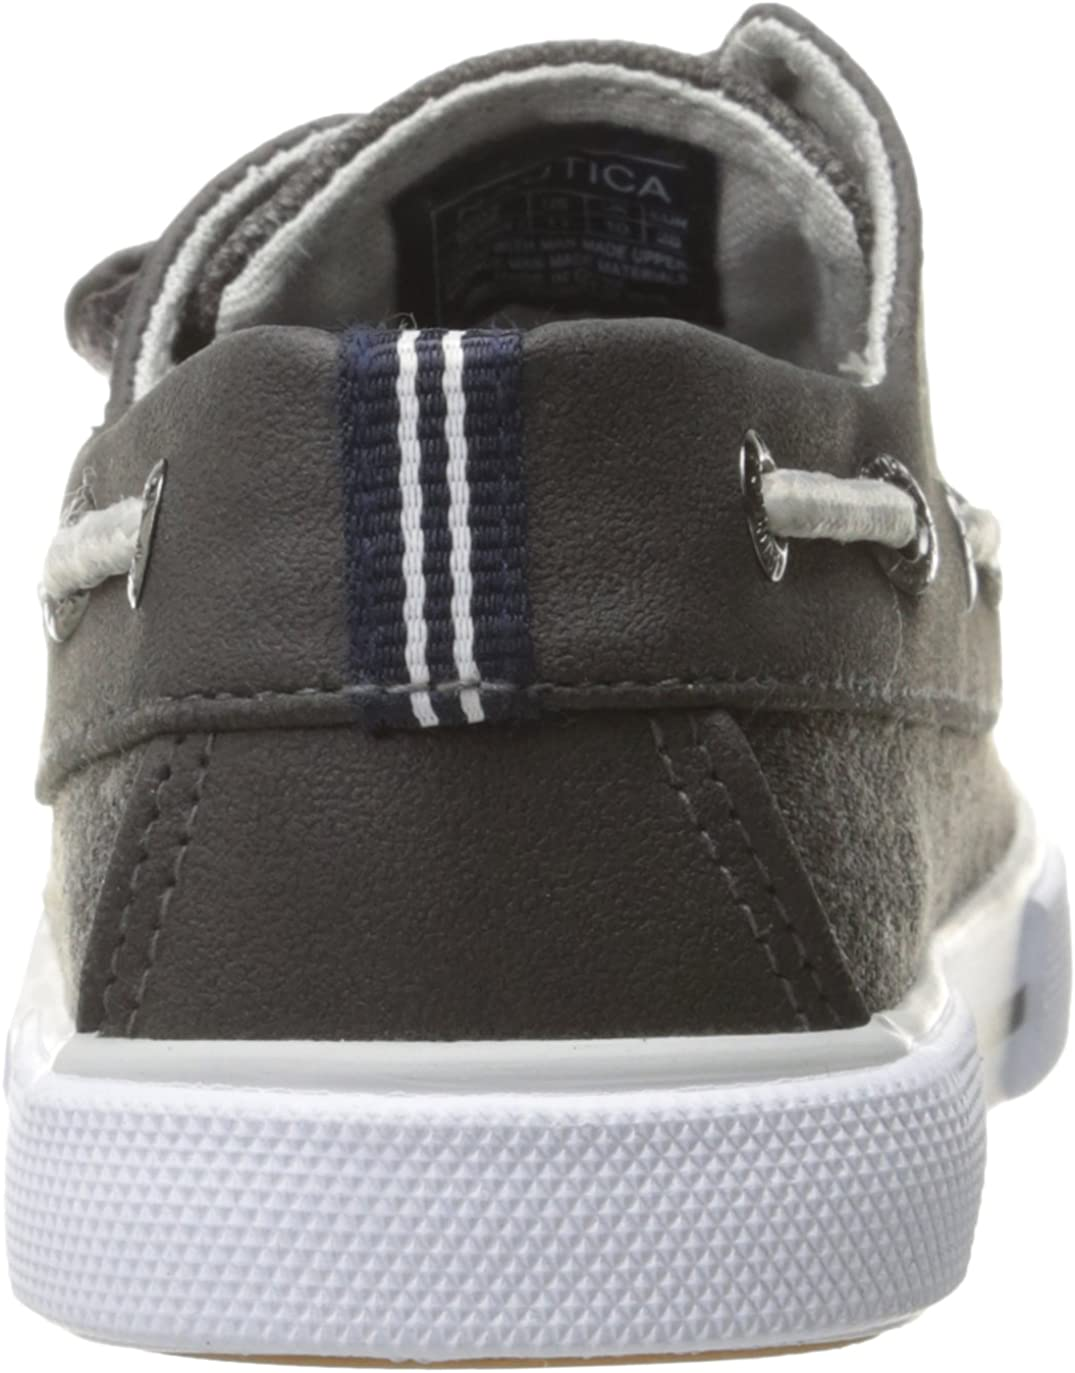 Nautica Kids Little River Toddler Slip-on